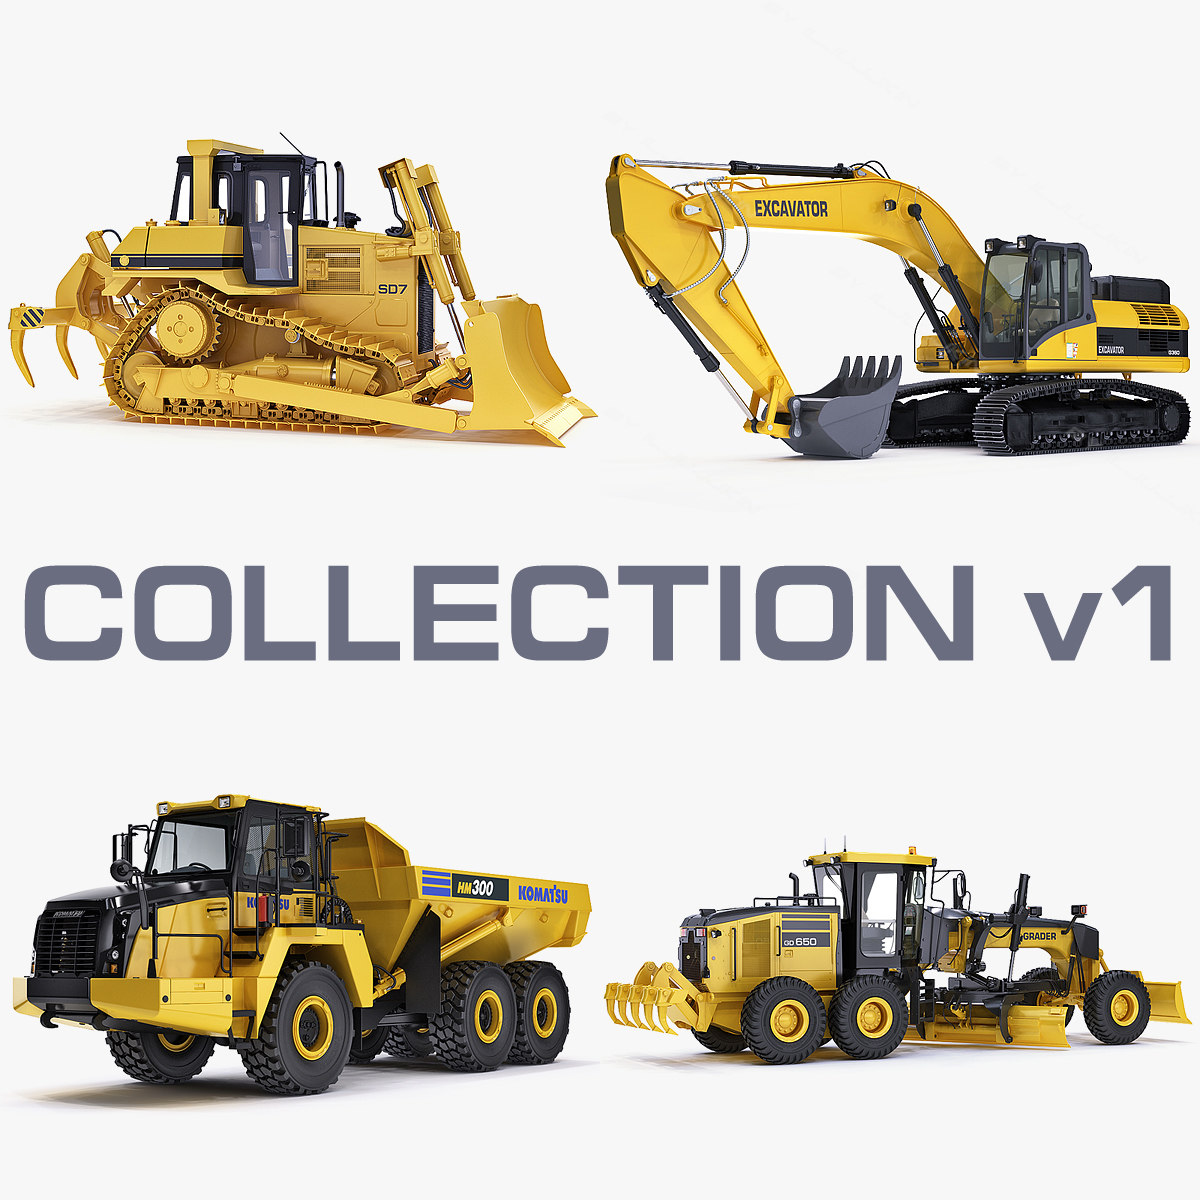 Collection_heavy_vehicle_v1.jpg